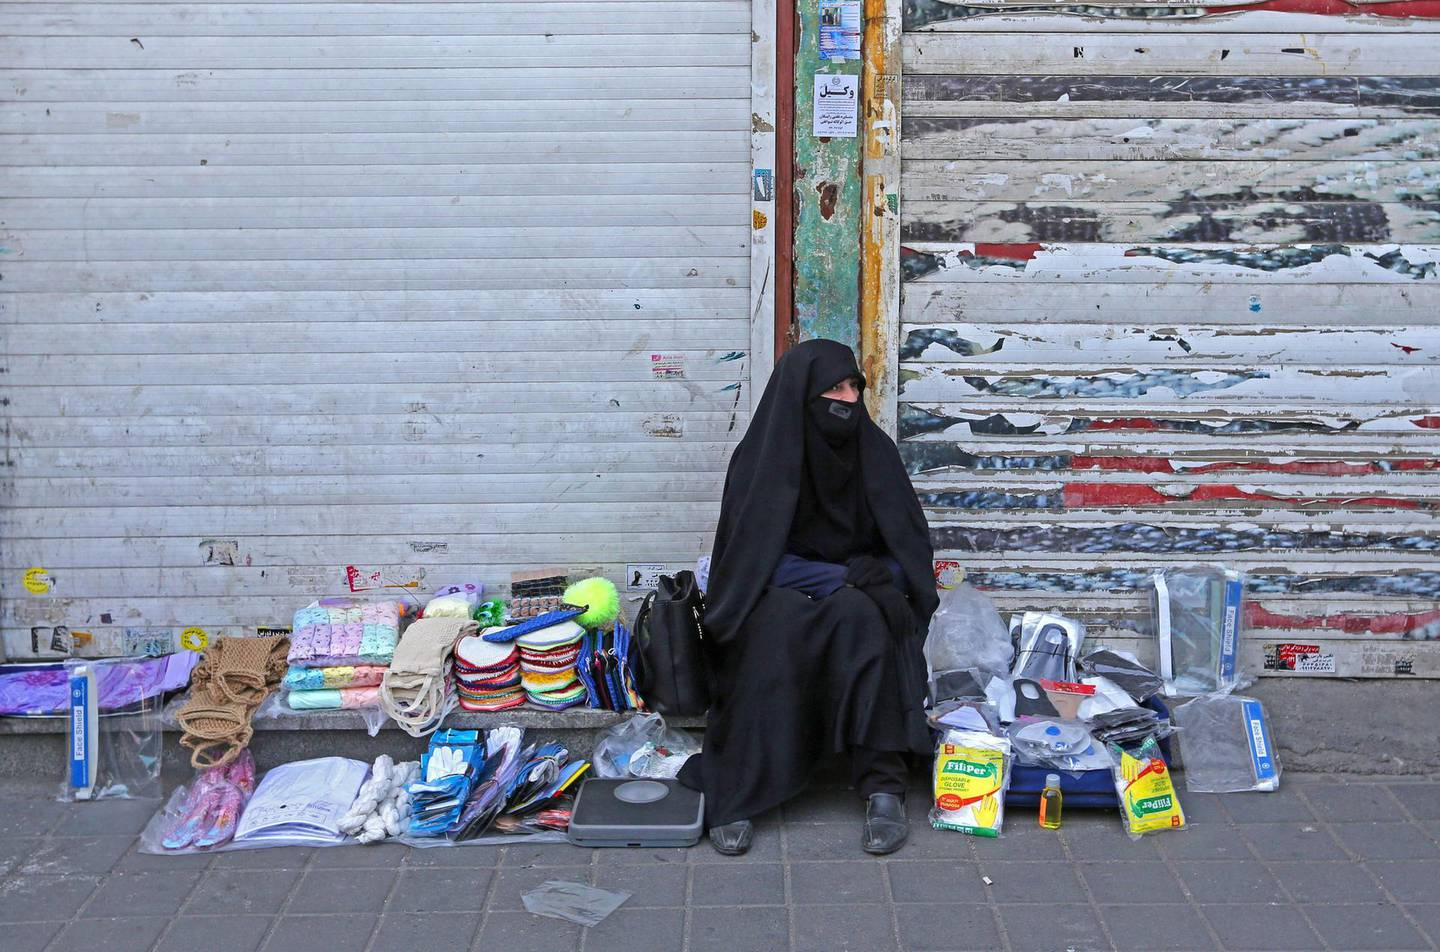 An Iranian street vendor wearing a protective mask amid the novel coronavirus pandemic, sits by her display of goods on a street of the capital Tehran, on May 09, 2020. / AFP / ATTA KENARE